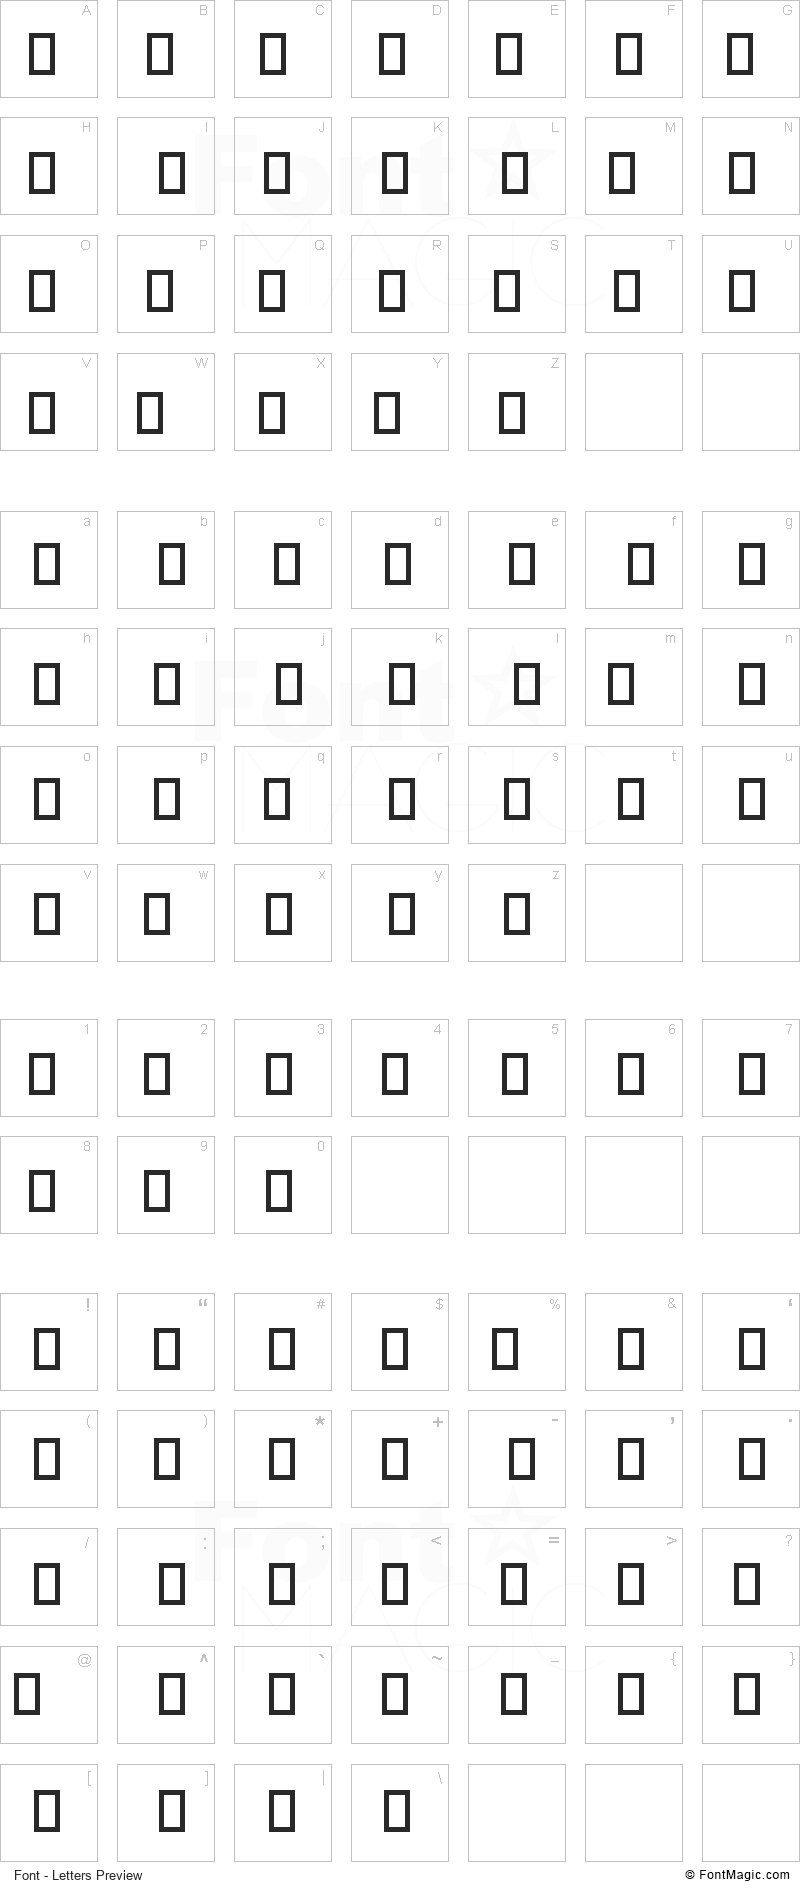 Nightmare on Social Media Font - All Latters Preview Chart